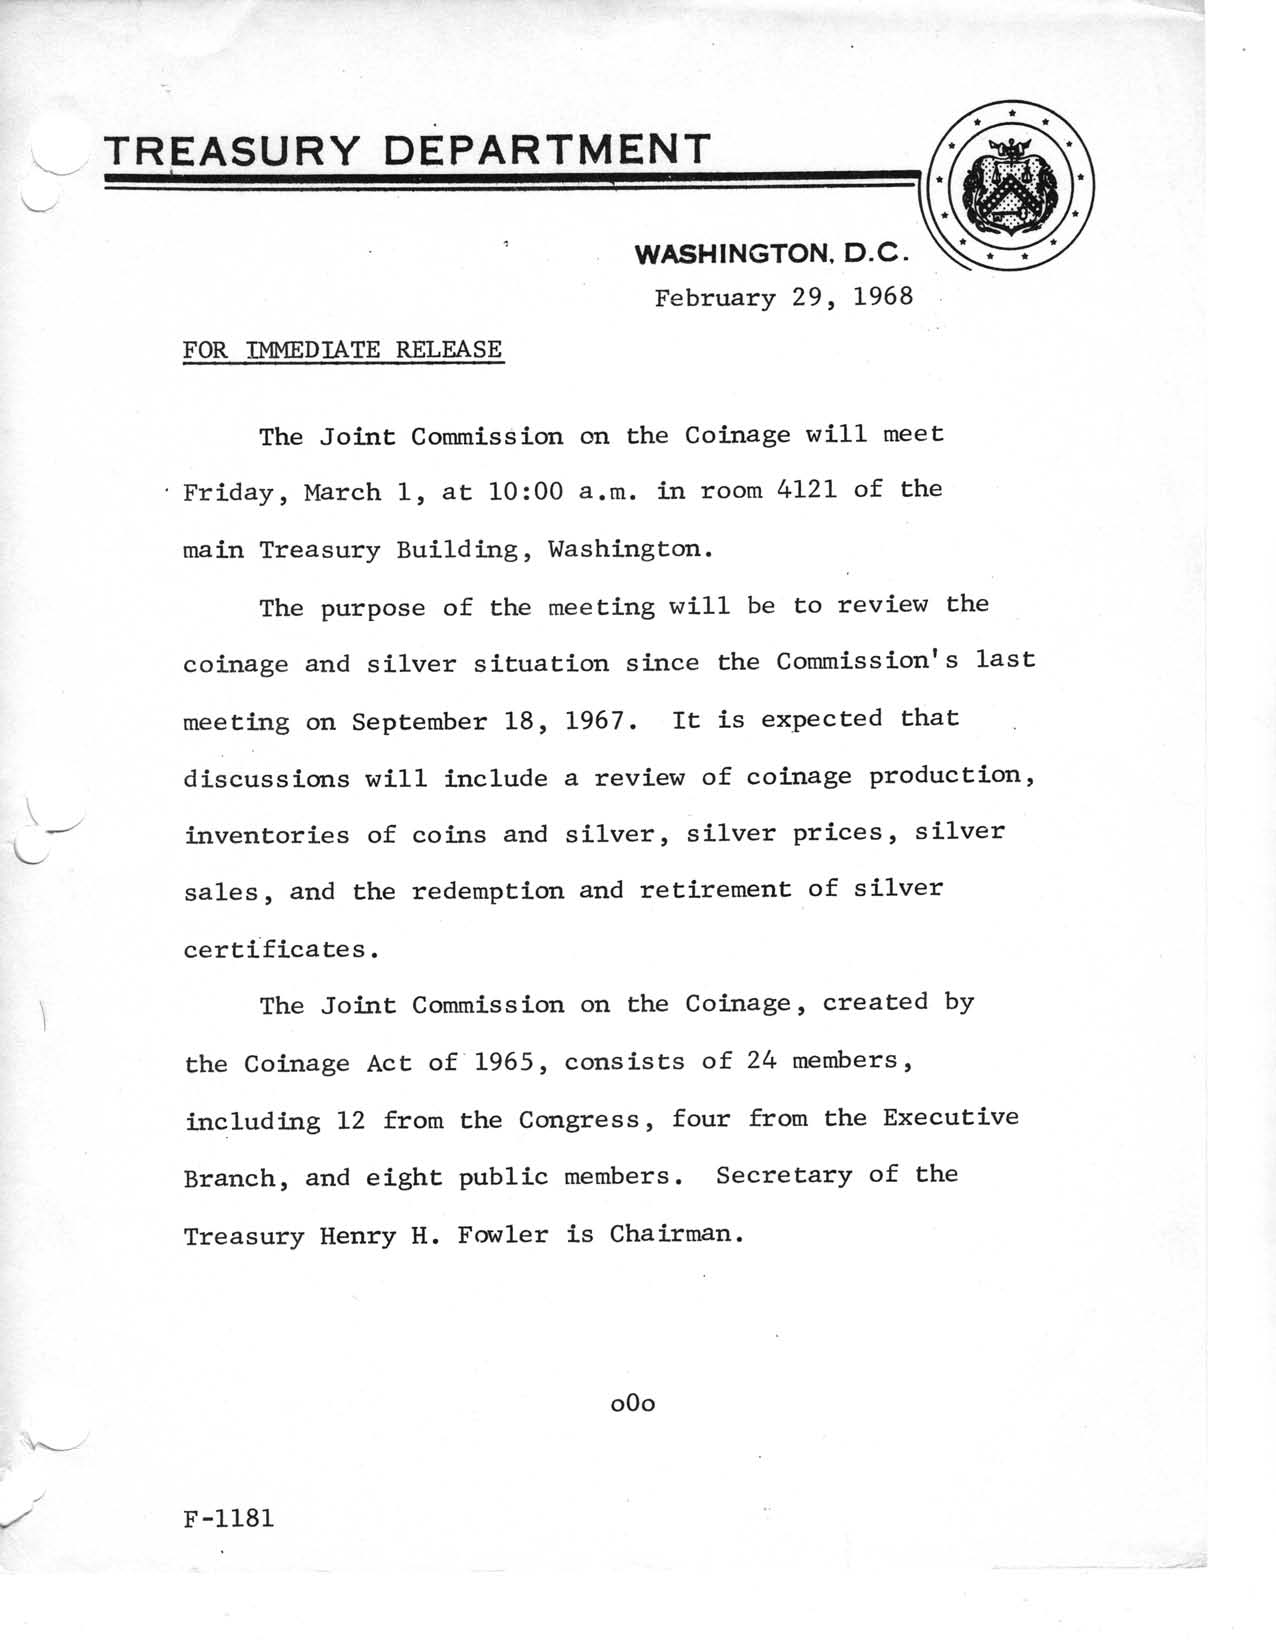 Historic Press Release: Joint Commission on Coinage, Page 1